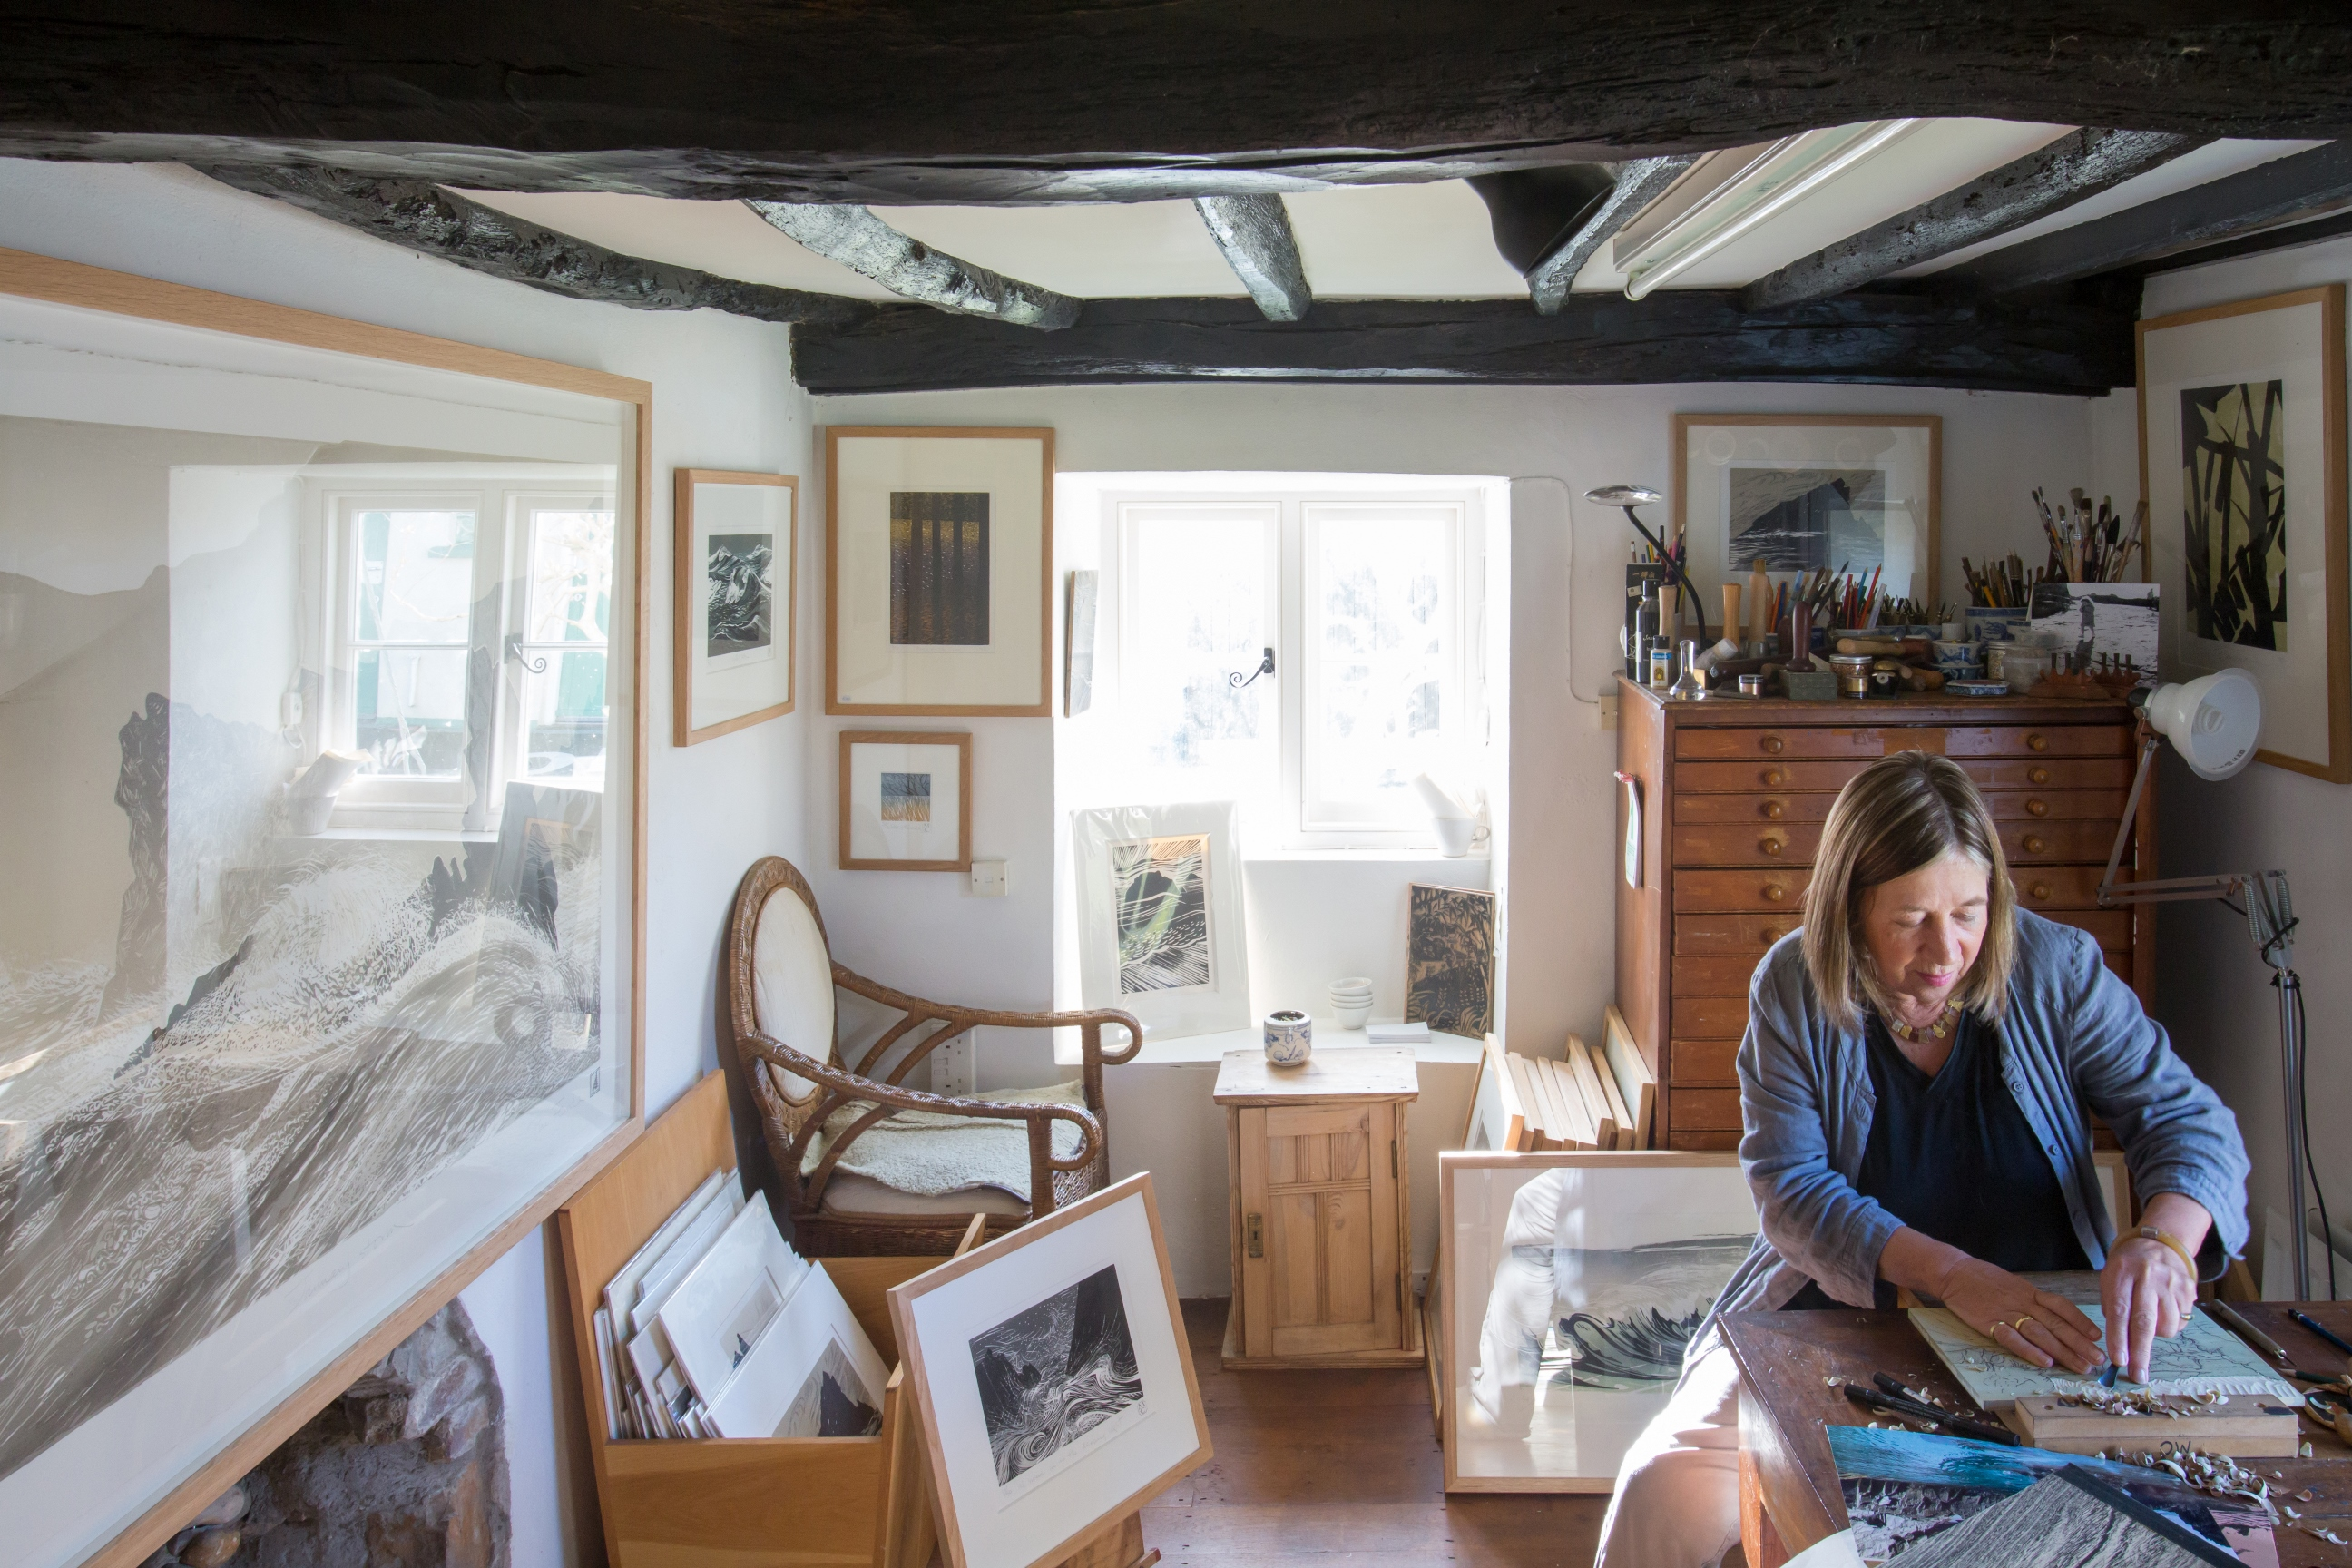 Merlyn Chesterman working in her studio at 2 Harton Manor B&B and studio at Hartland North Devon